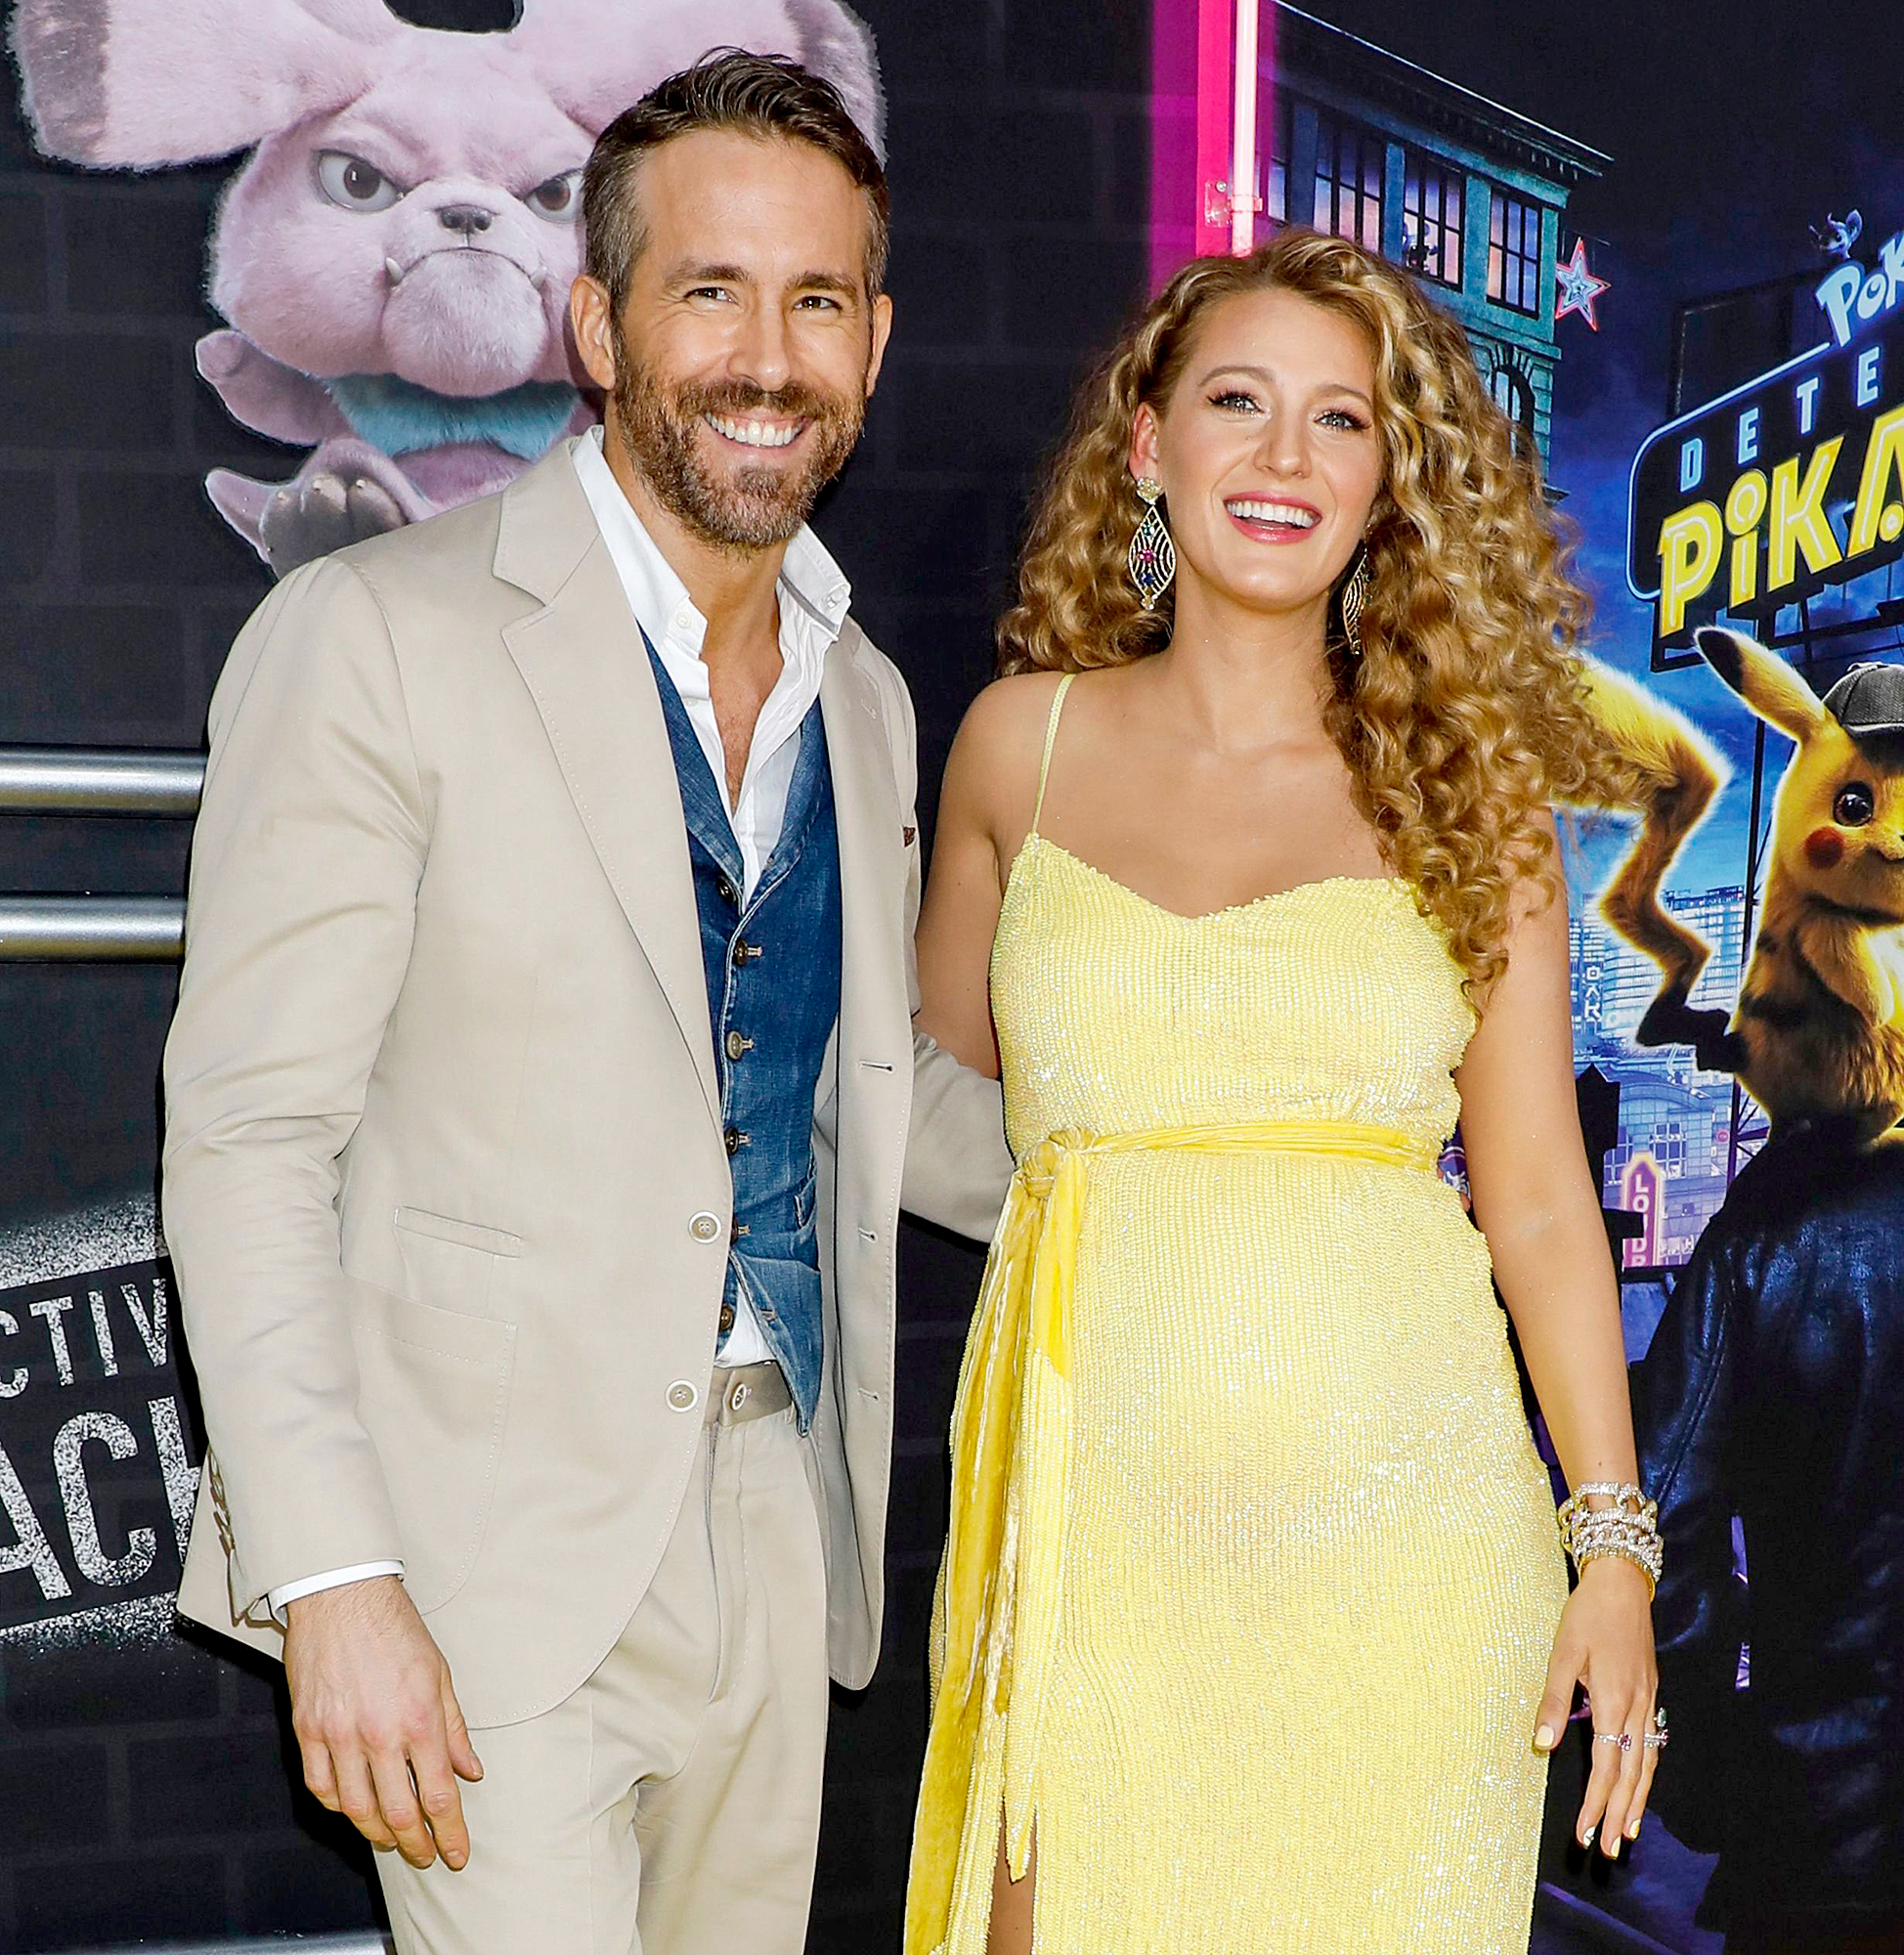 Ryan-Reynolds-Left-Film-Set-to-Be-With-Blake-Lively-After-3rd-Baby's-Arrival